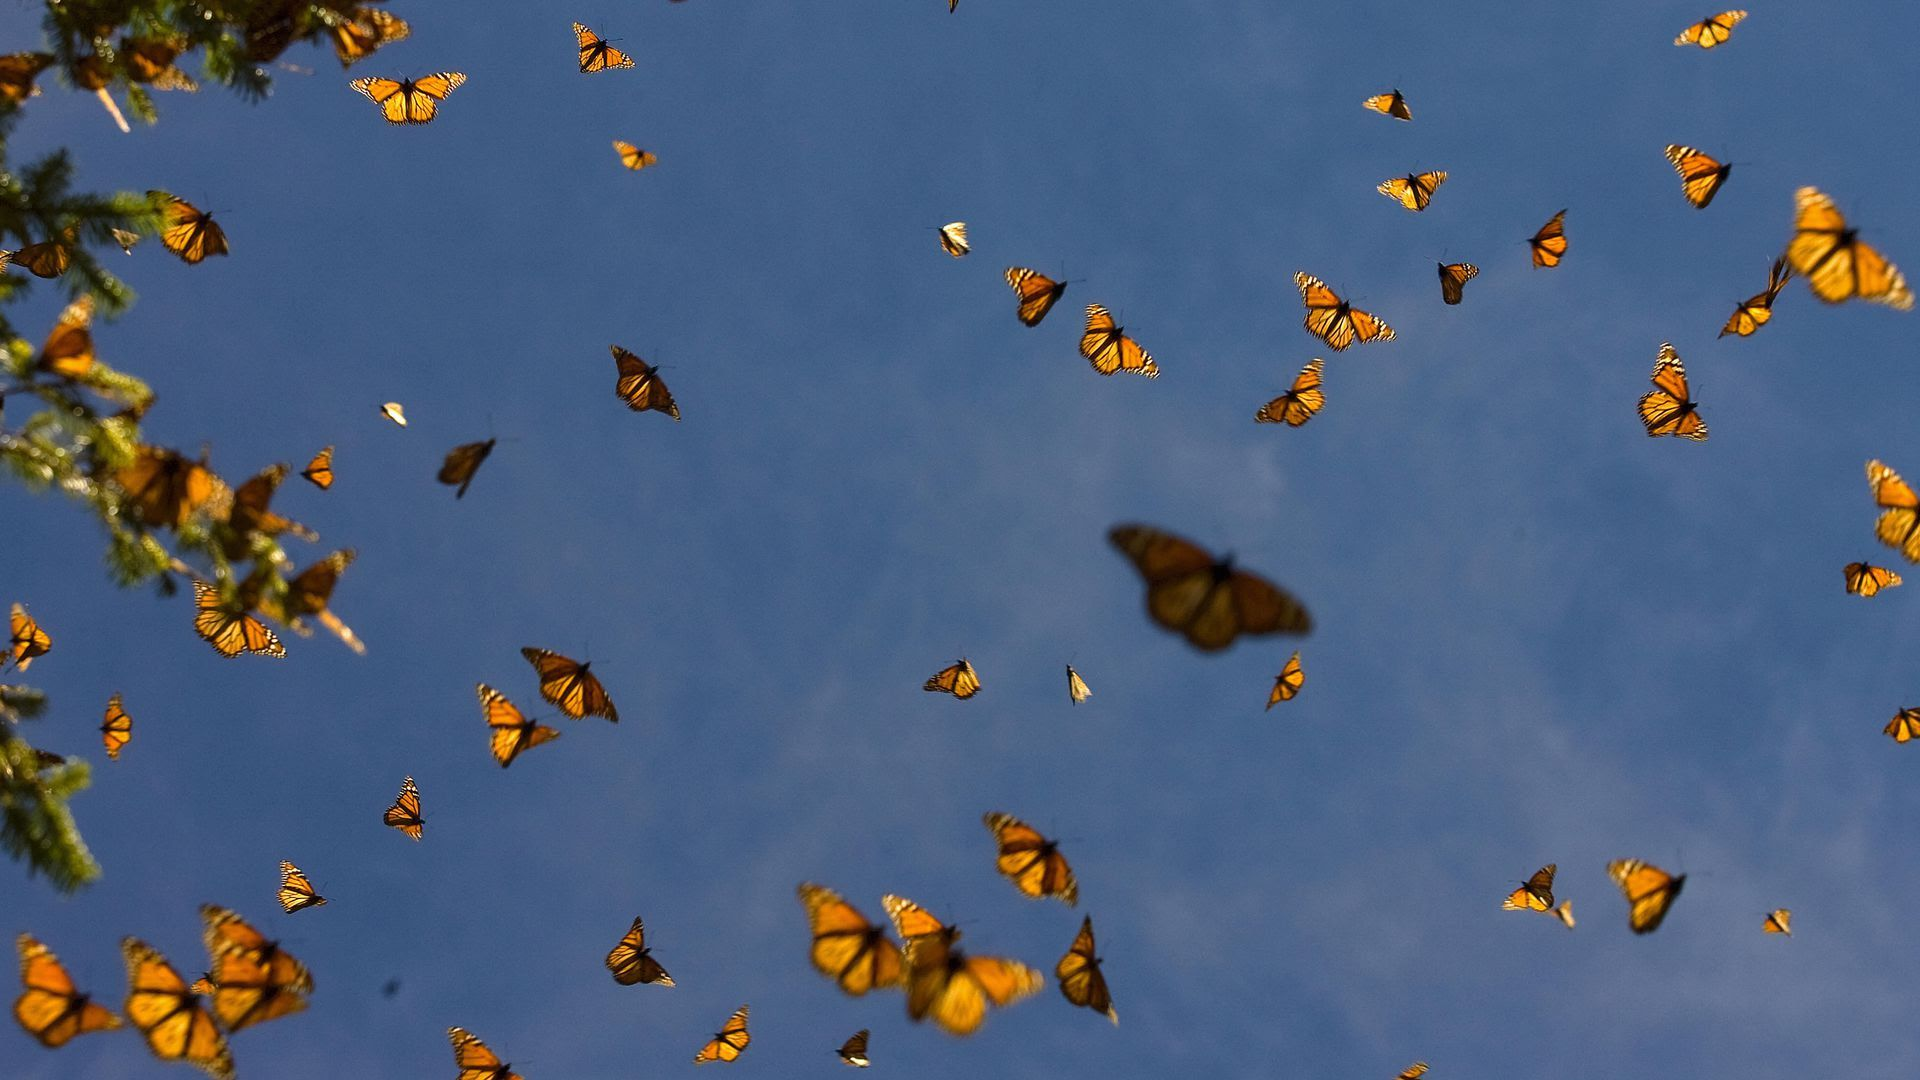 A group of butterflies in the air